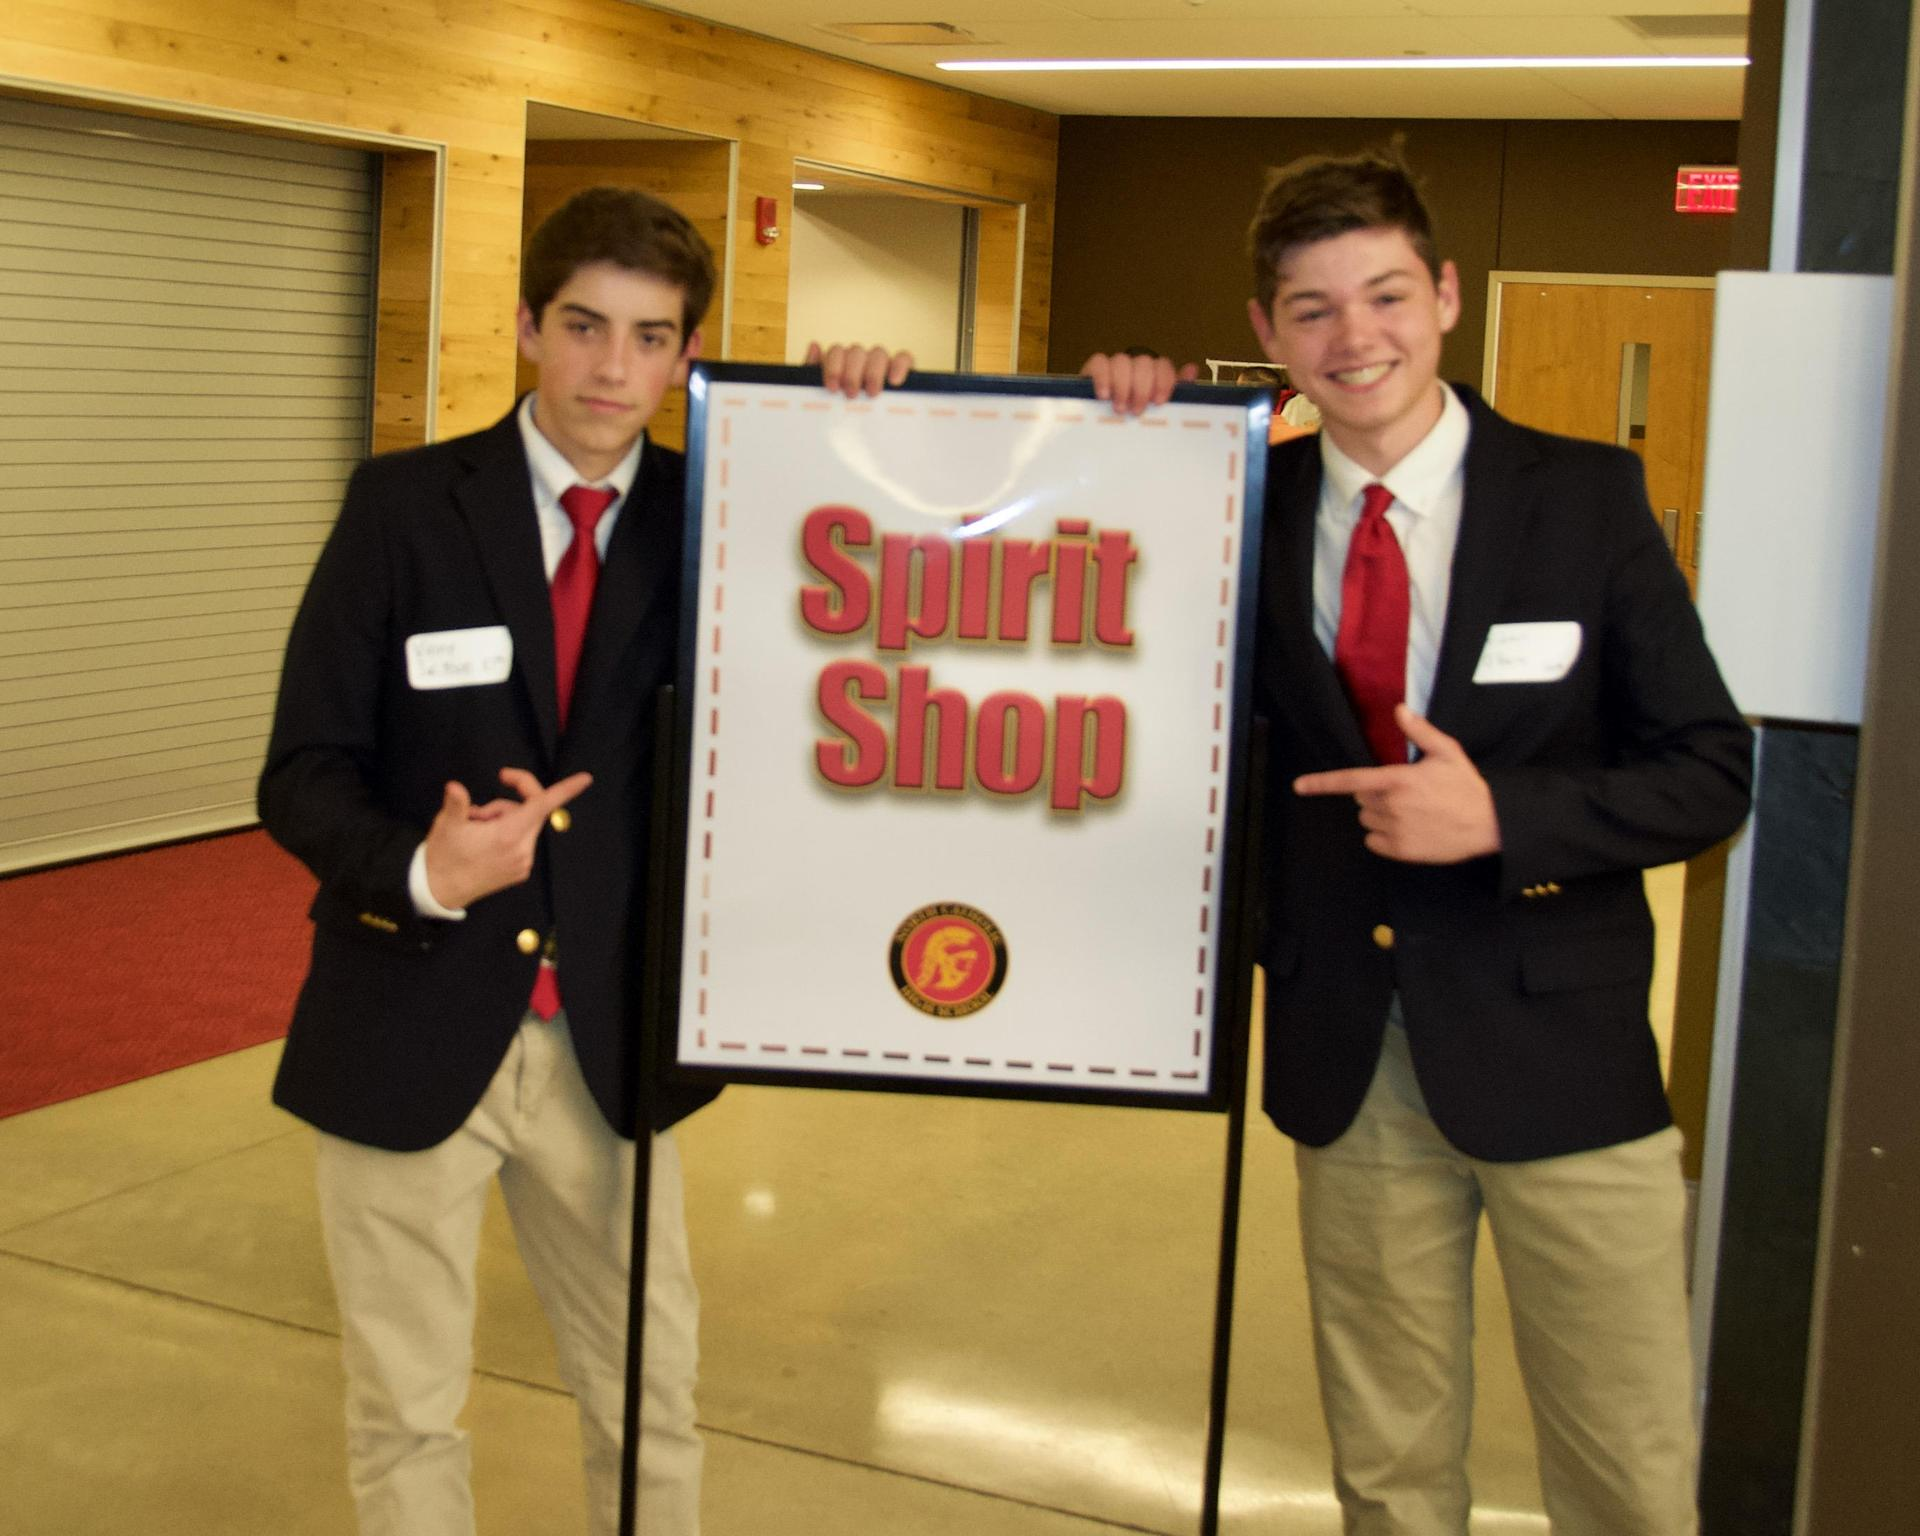 North Catholic Spirit Shop